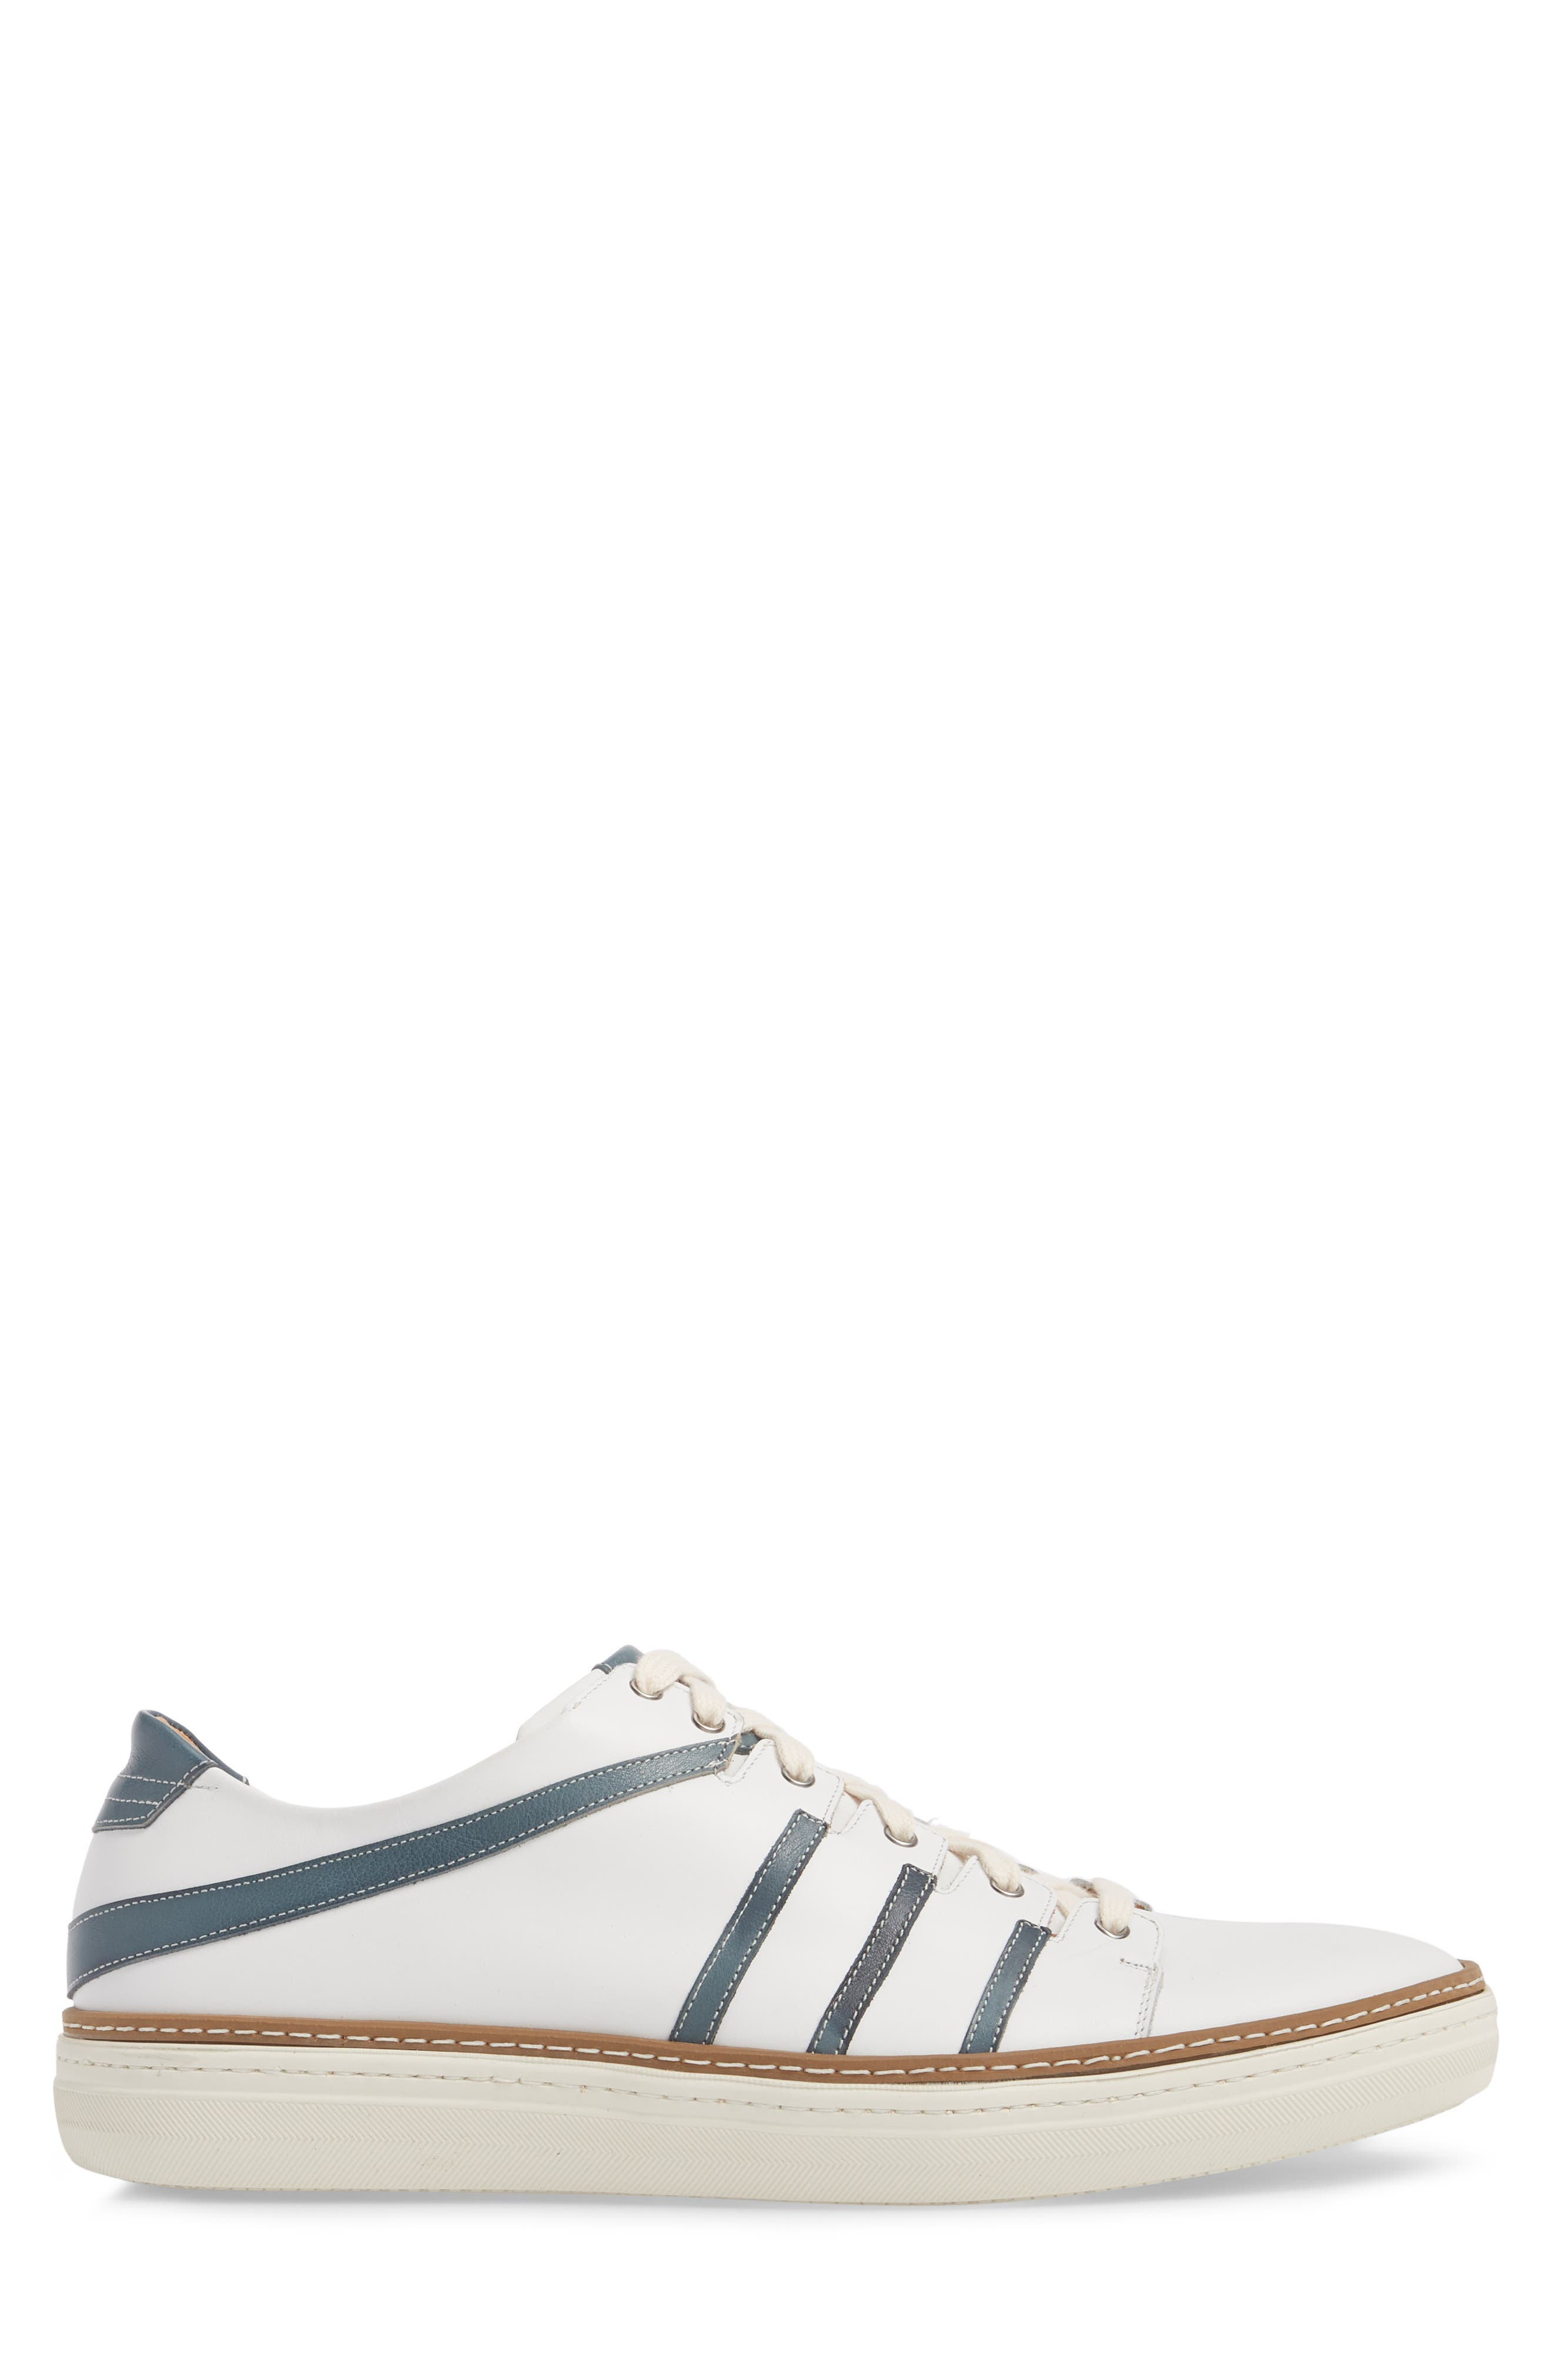 Tebas Striped Low Top Sneaker,                             Alternate thumbnail 3, color,                             WHITE/ JEANS LEATHER